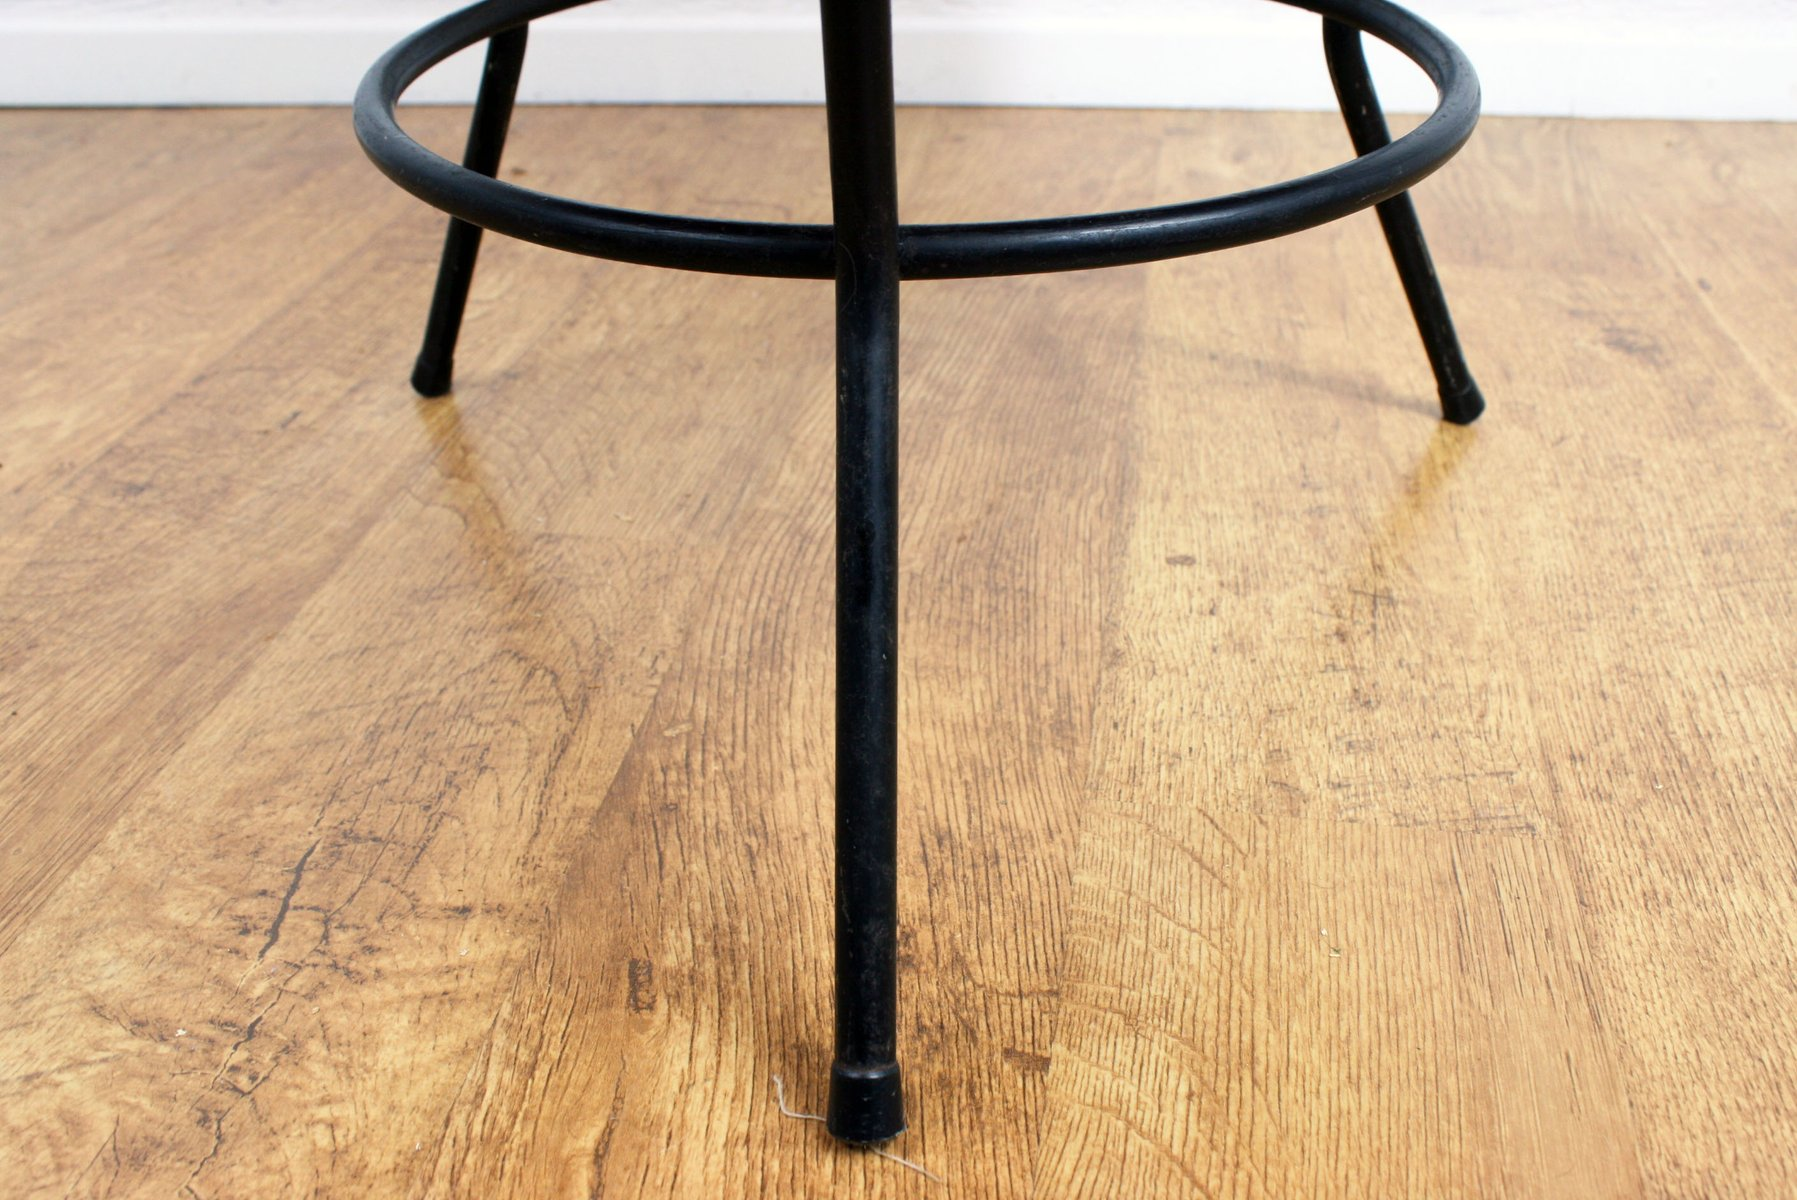 Vintage Rattan Coffee Table with Black Metal Base for sale at Pamono